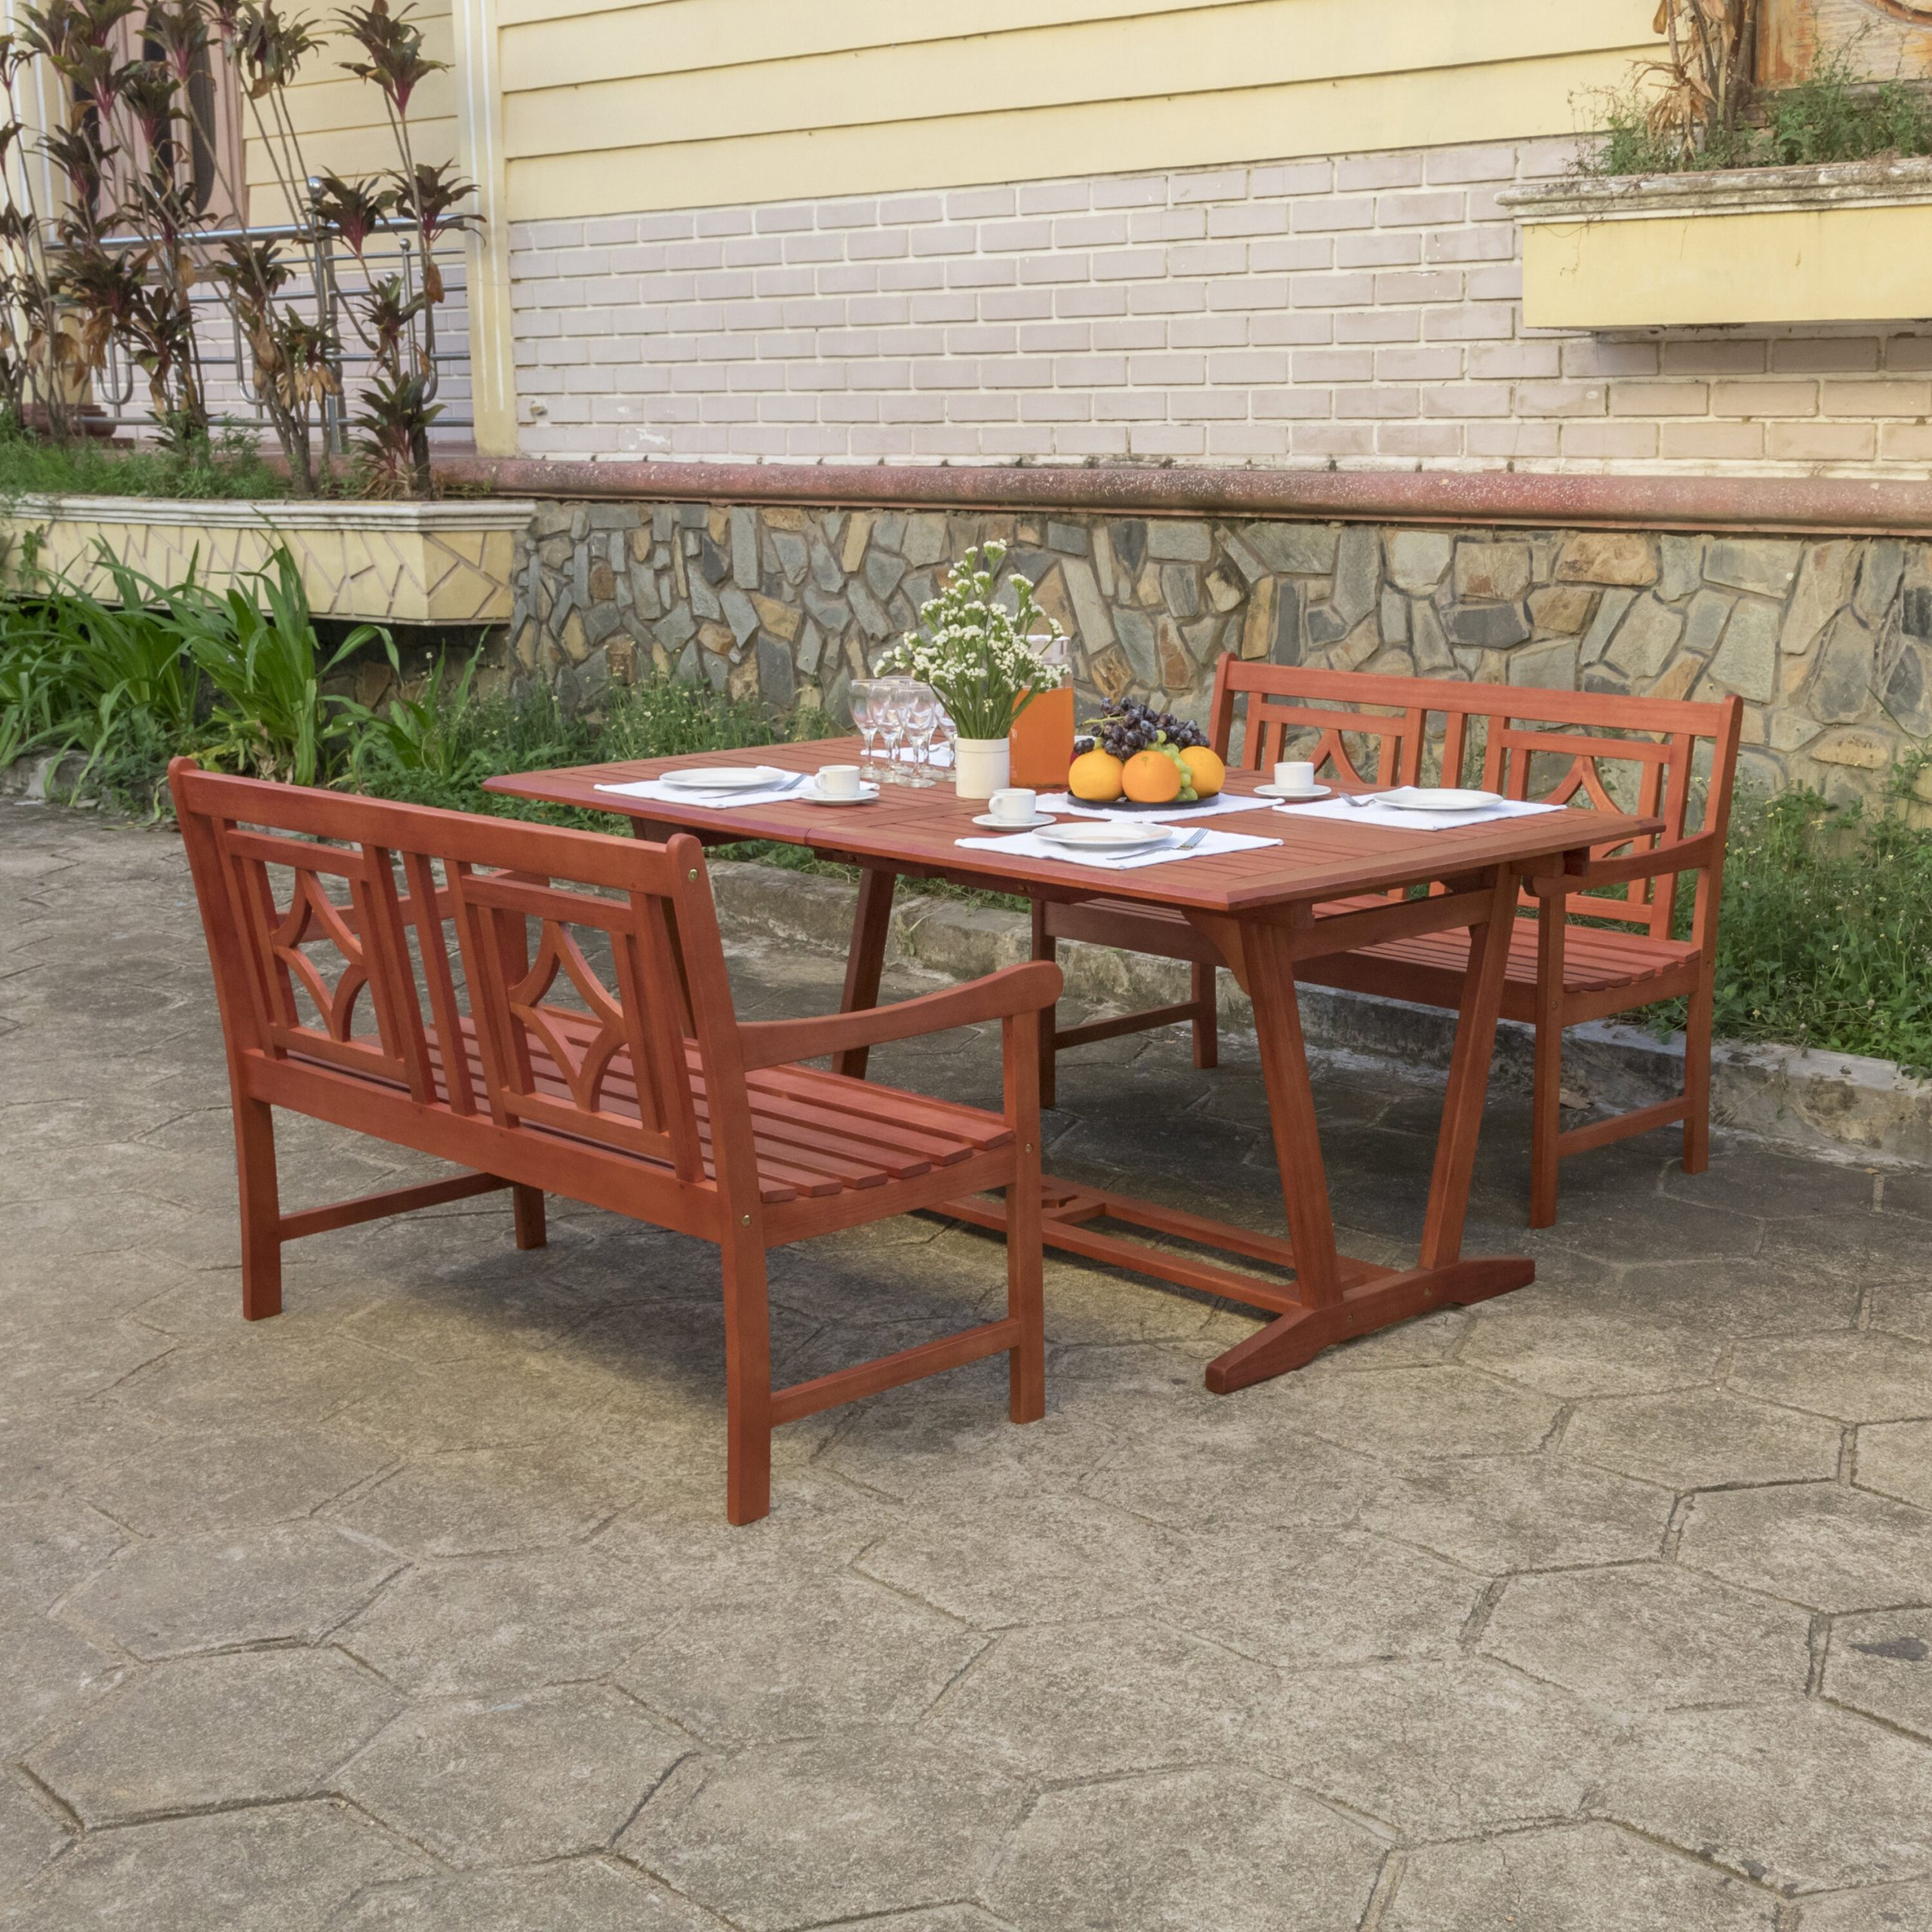 Amabel 3 Piece Patio Dining Set Pertaining To Amabel Patio Diamond Wooden Garden Benches (View 9 of 25)